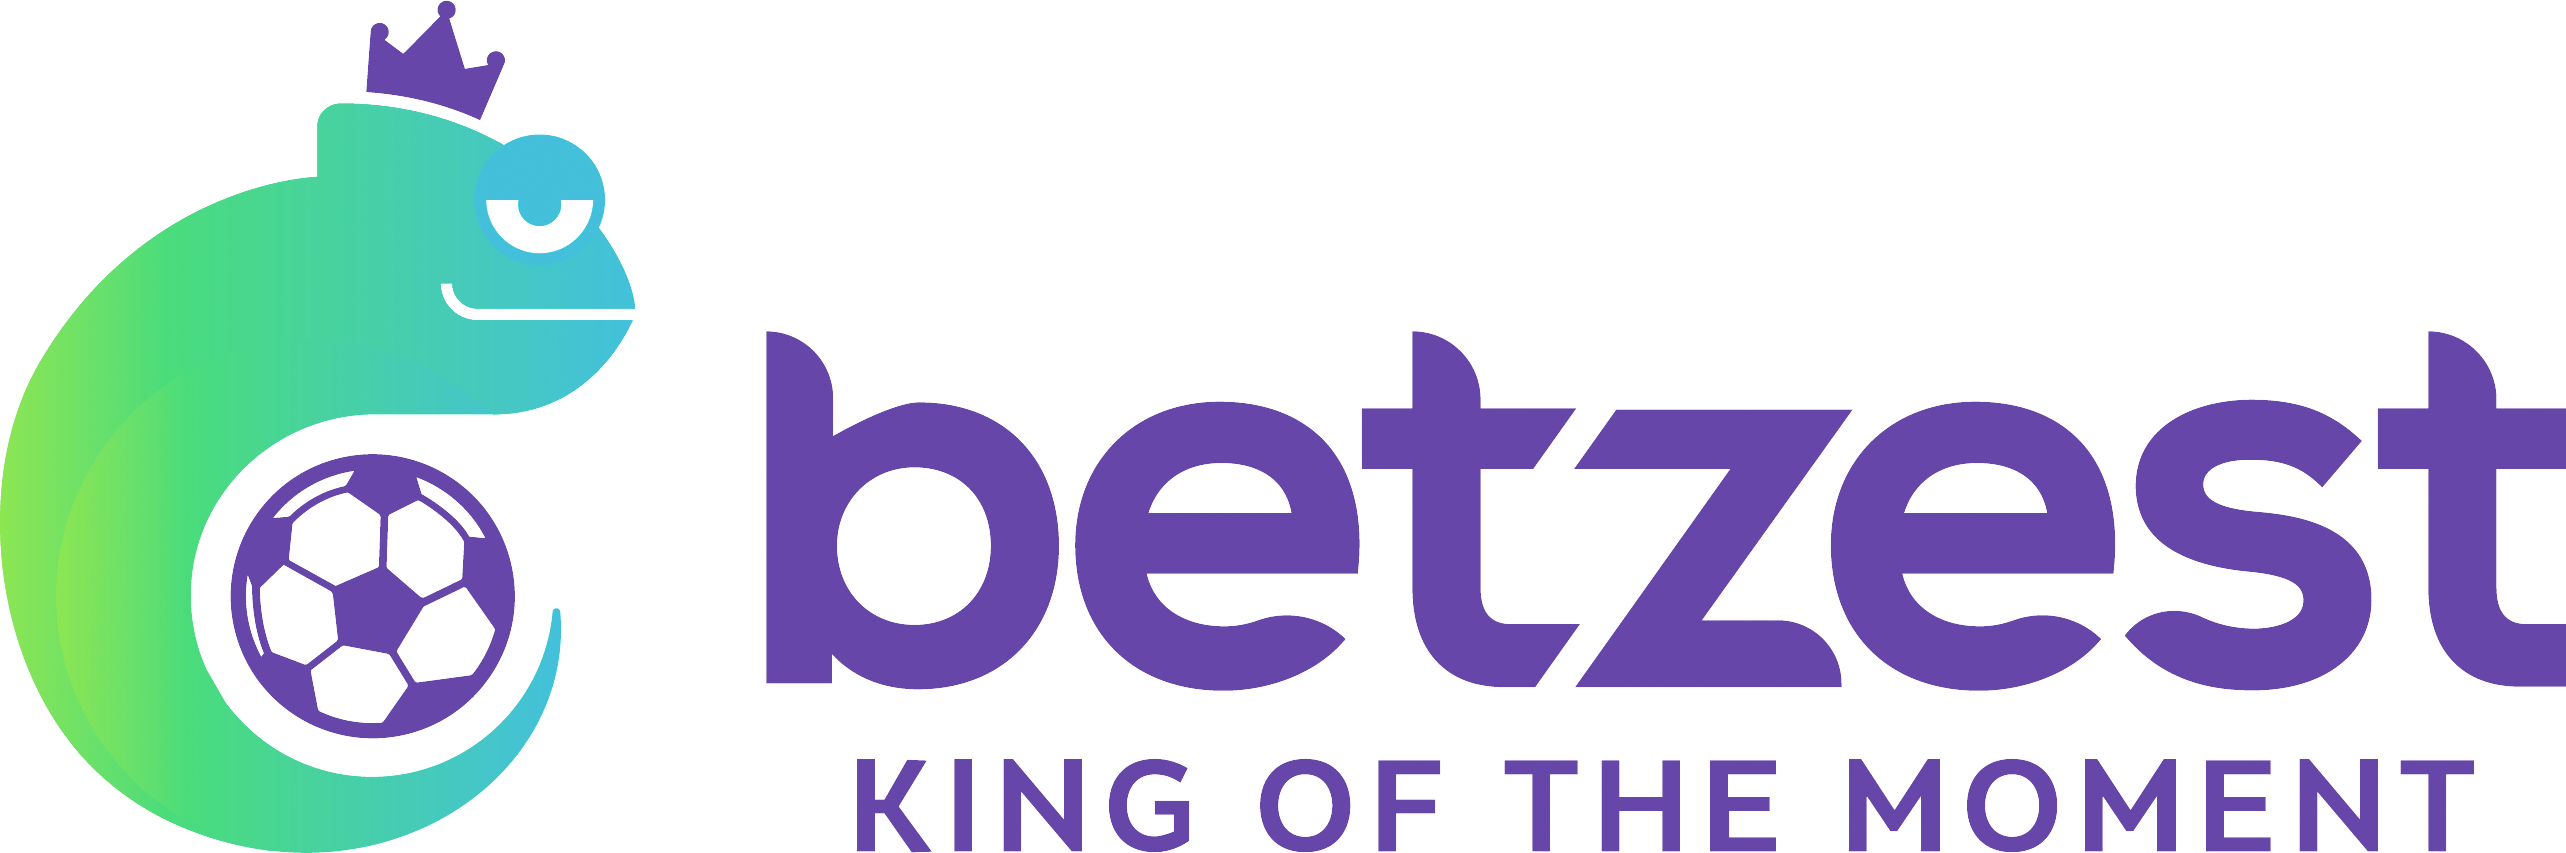 Betzest Inks New Partnership With Paysafecard